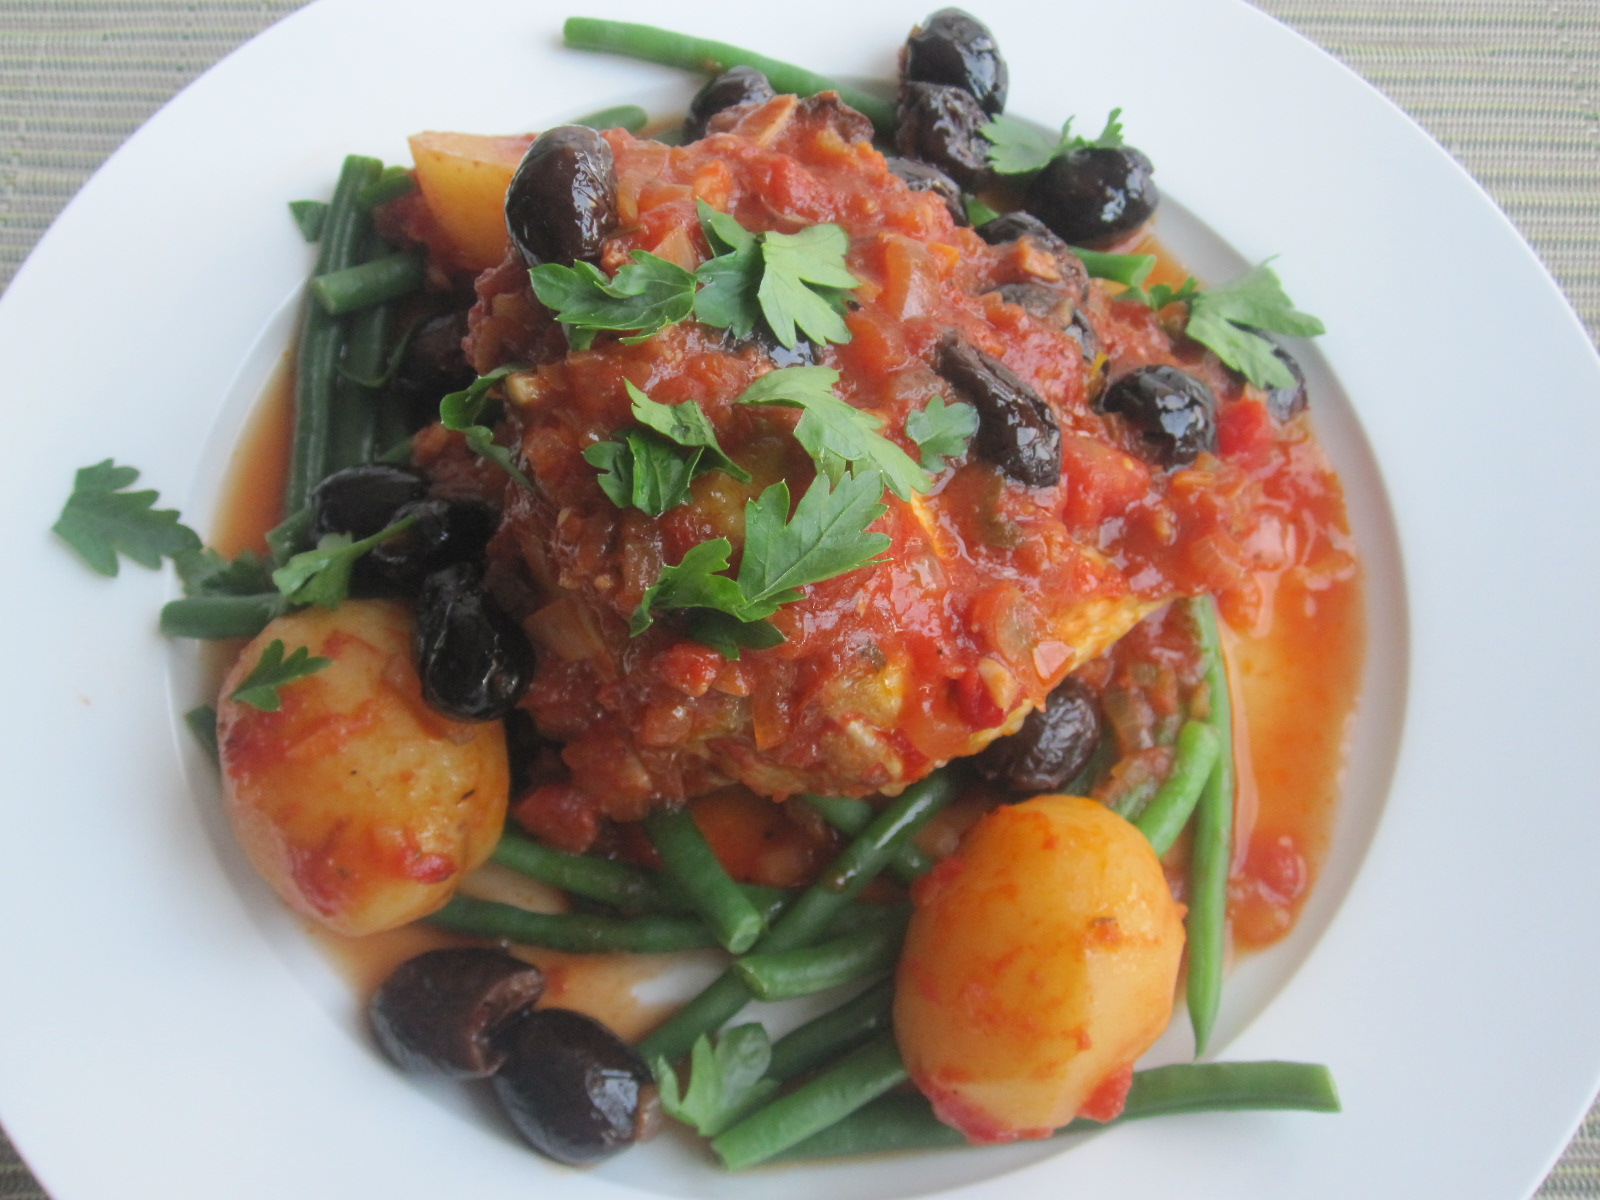 wheeler and company: Chicken with tomato and black olives